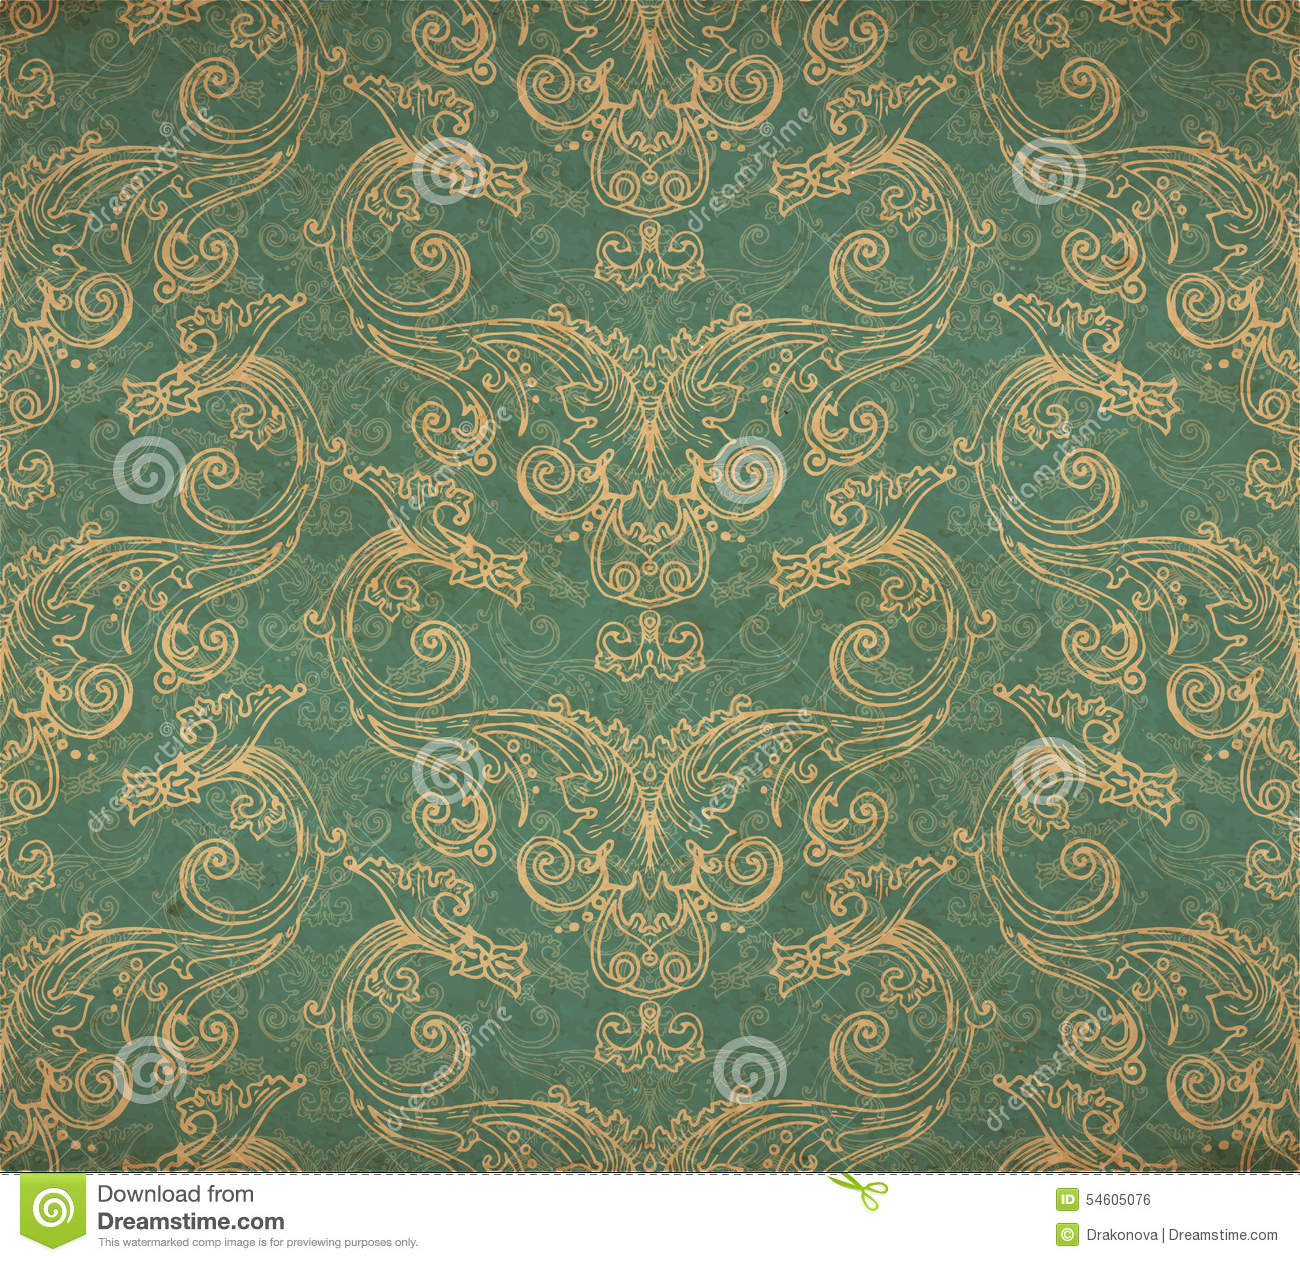 Old Paper Wallpaper: Vintage Old Wallpaper Stock Vector. Illustration Of Azure